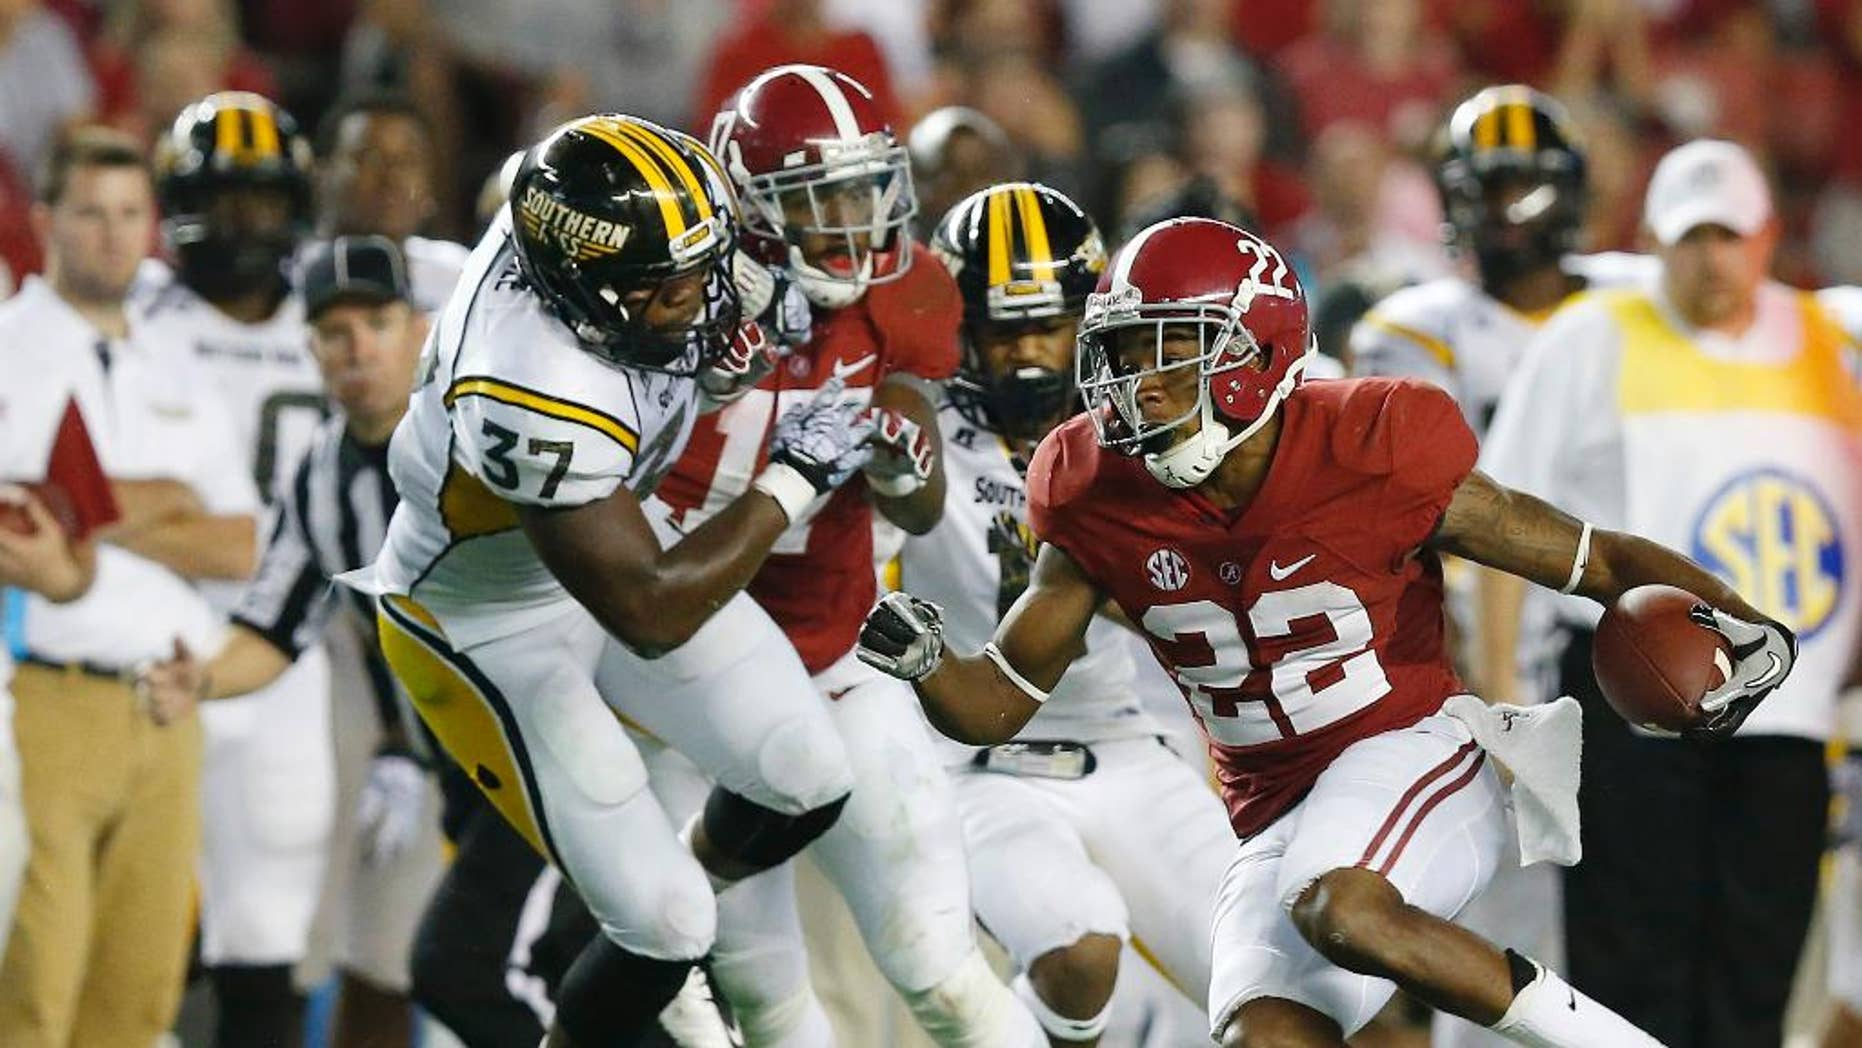 Alabama wide receiver Christion Jones (22) runs the ball during the second half of an NCAA college football game against Southern Mississippi on Saturday, Sept. 13, 2014, in Tuscaloosa, Ala. (AP Photo/Brynn Anderson)